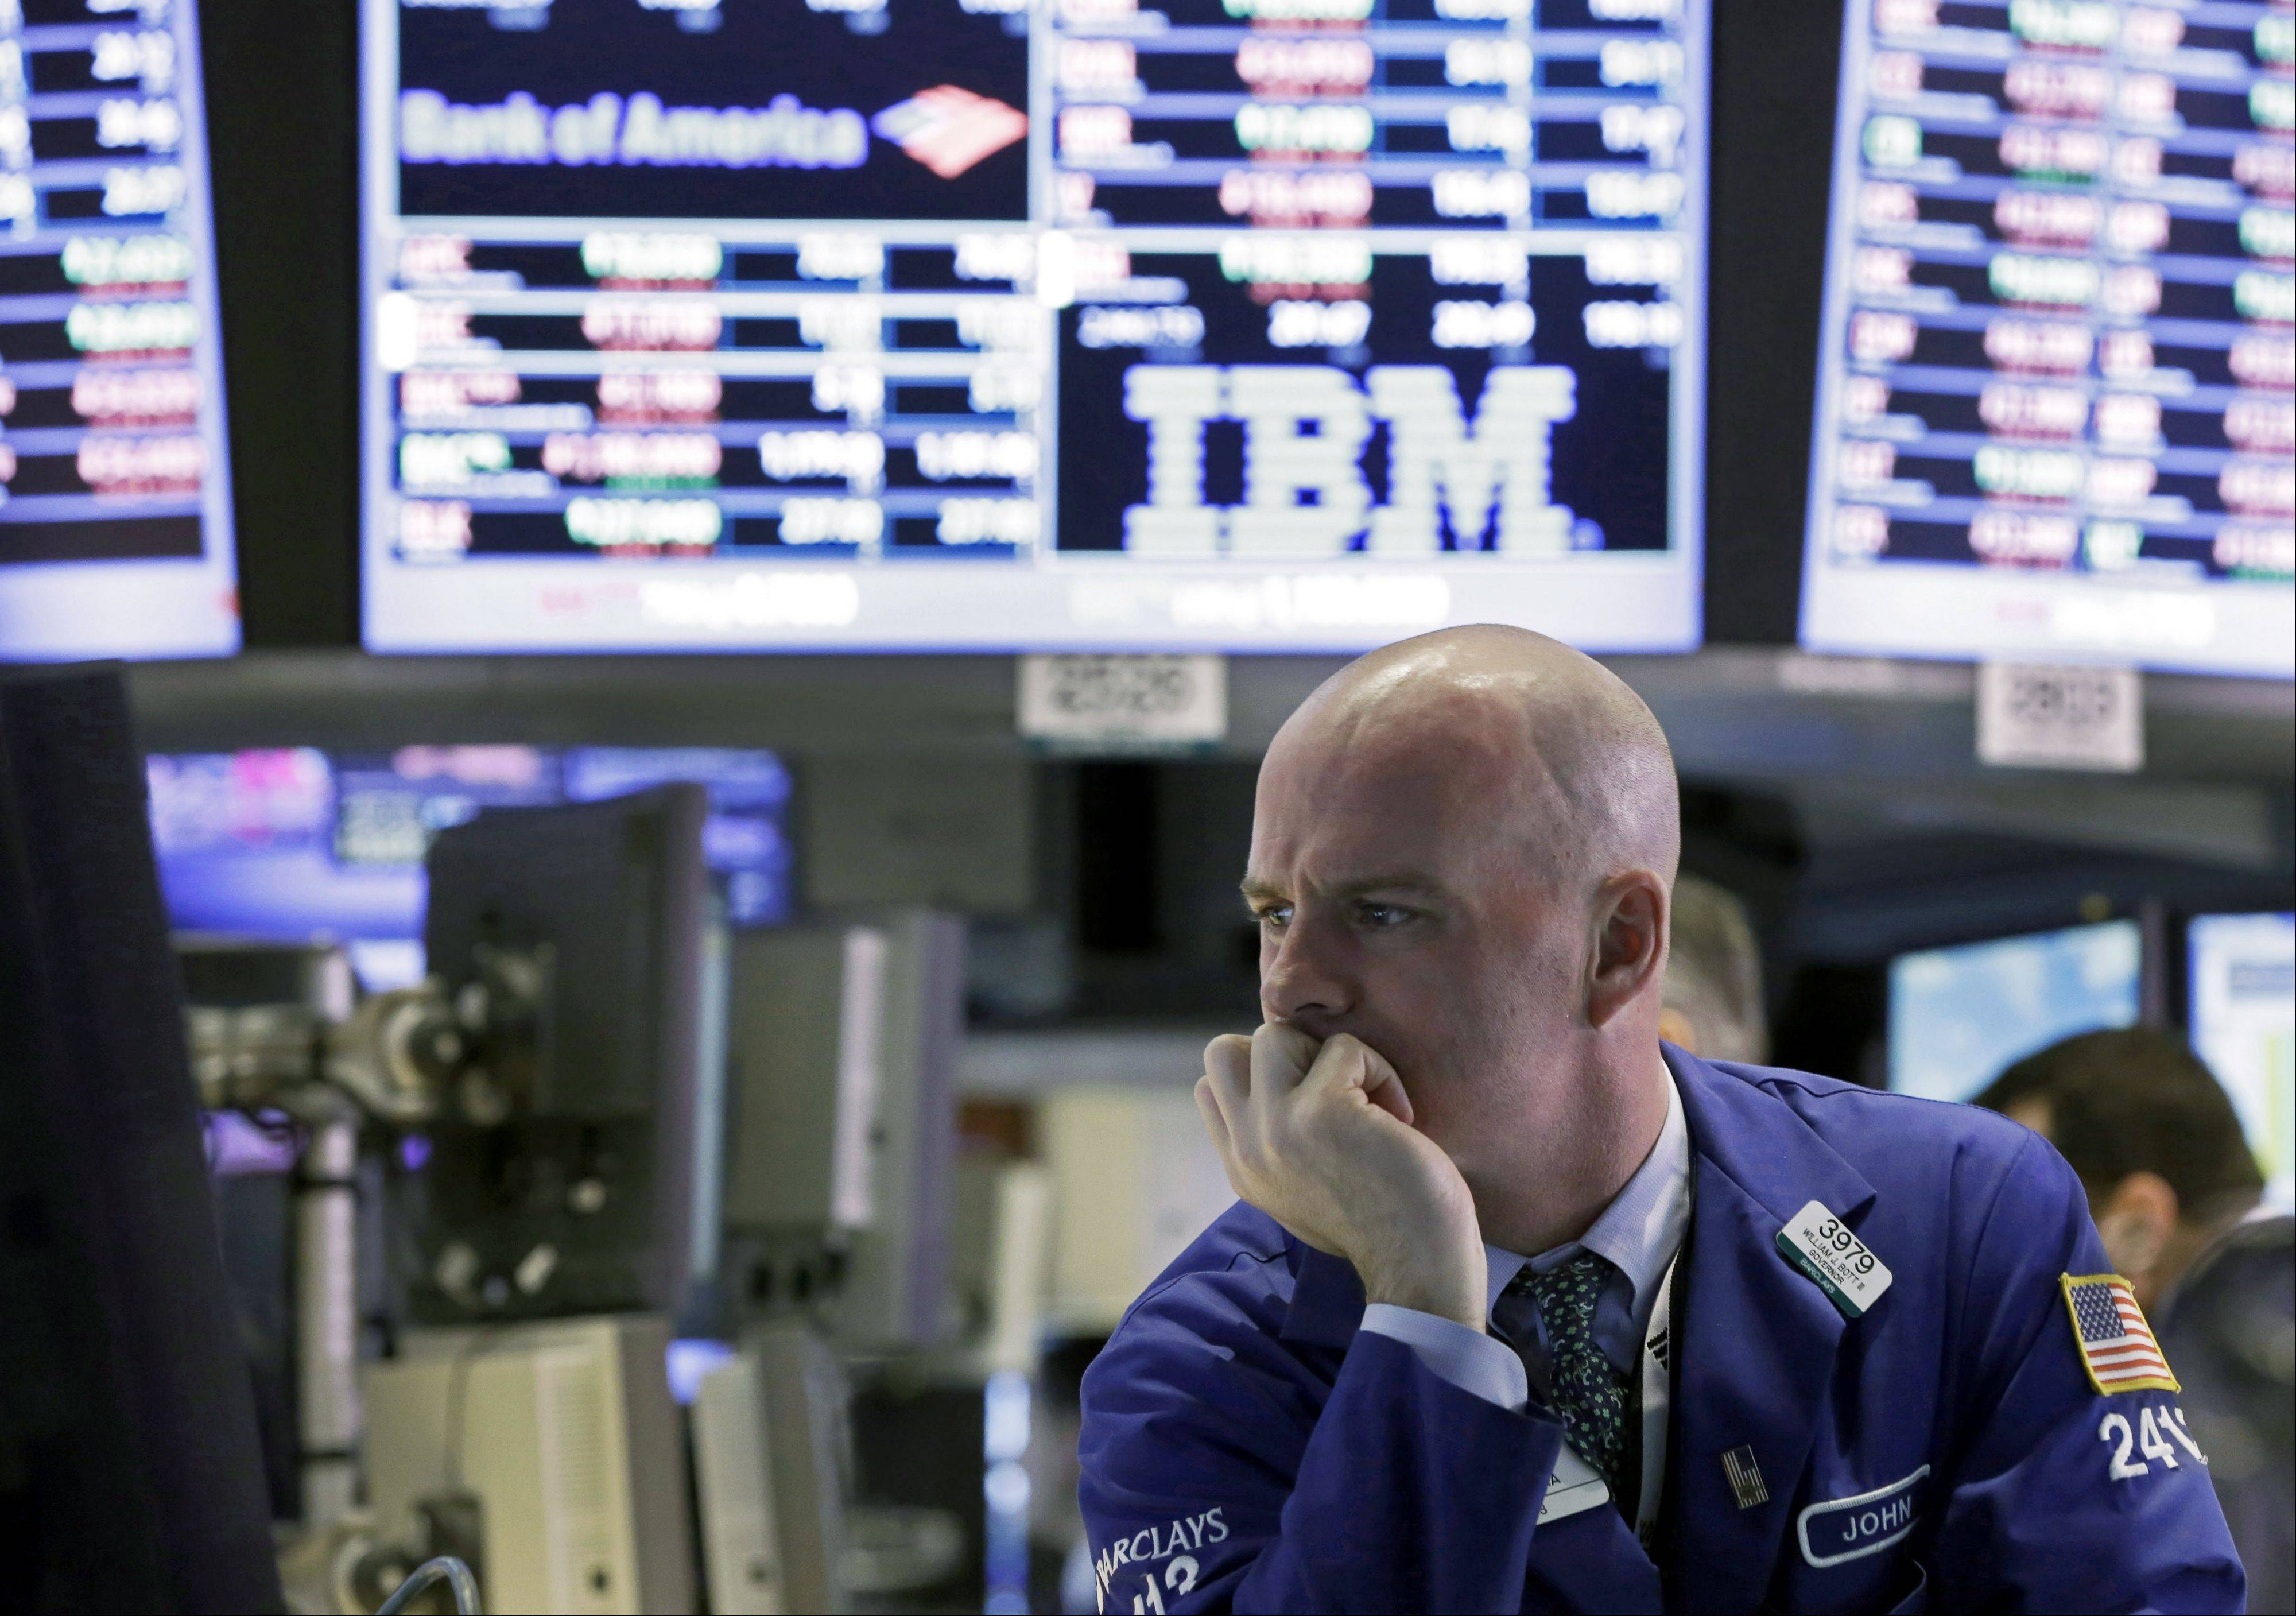 U.S. stocks fell, giving benchmark indexes their biggest losses since November, as partial election results spurred concern about prospects for a stable government in Italy and a worsening of Europe's debt crisis.